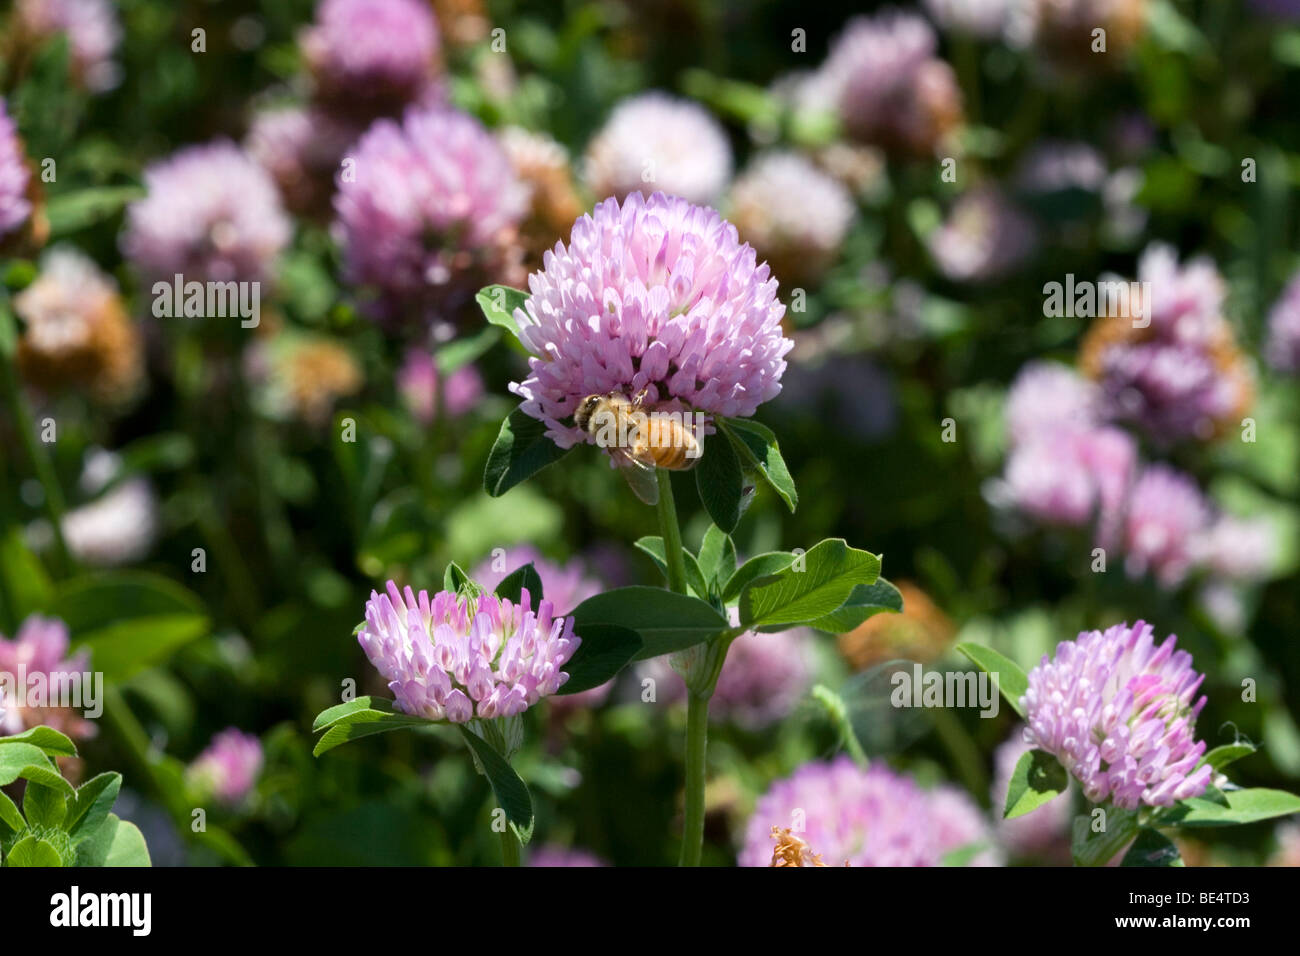 Honey bee pollinating a red clover flower in Oregon, USA. - Stock Image